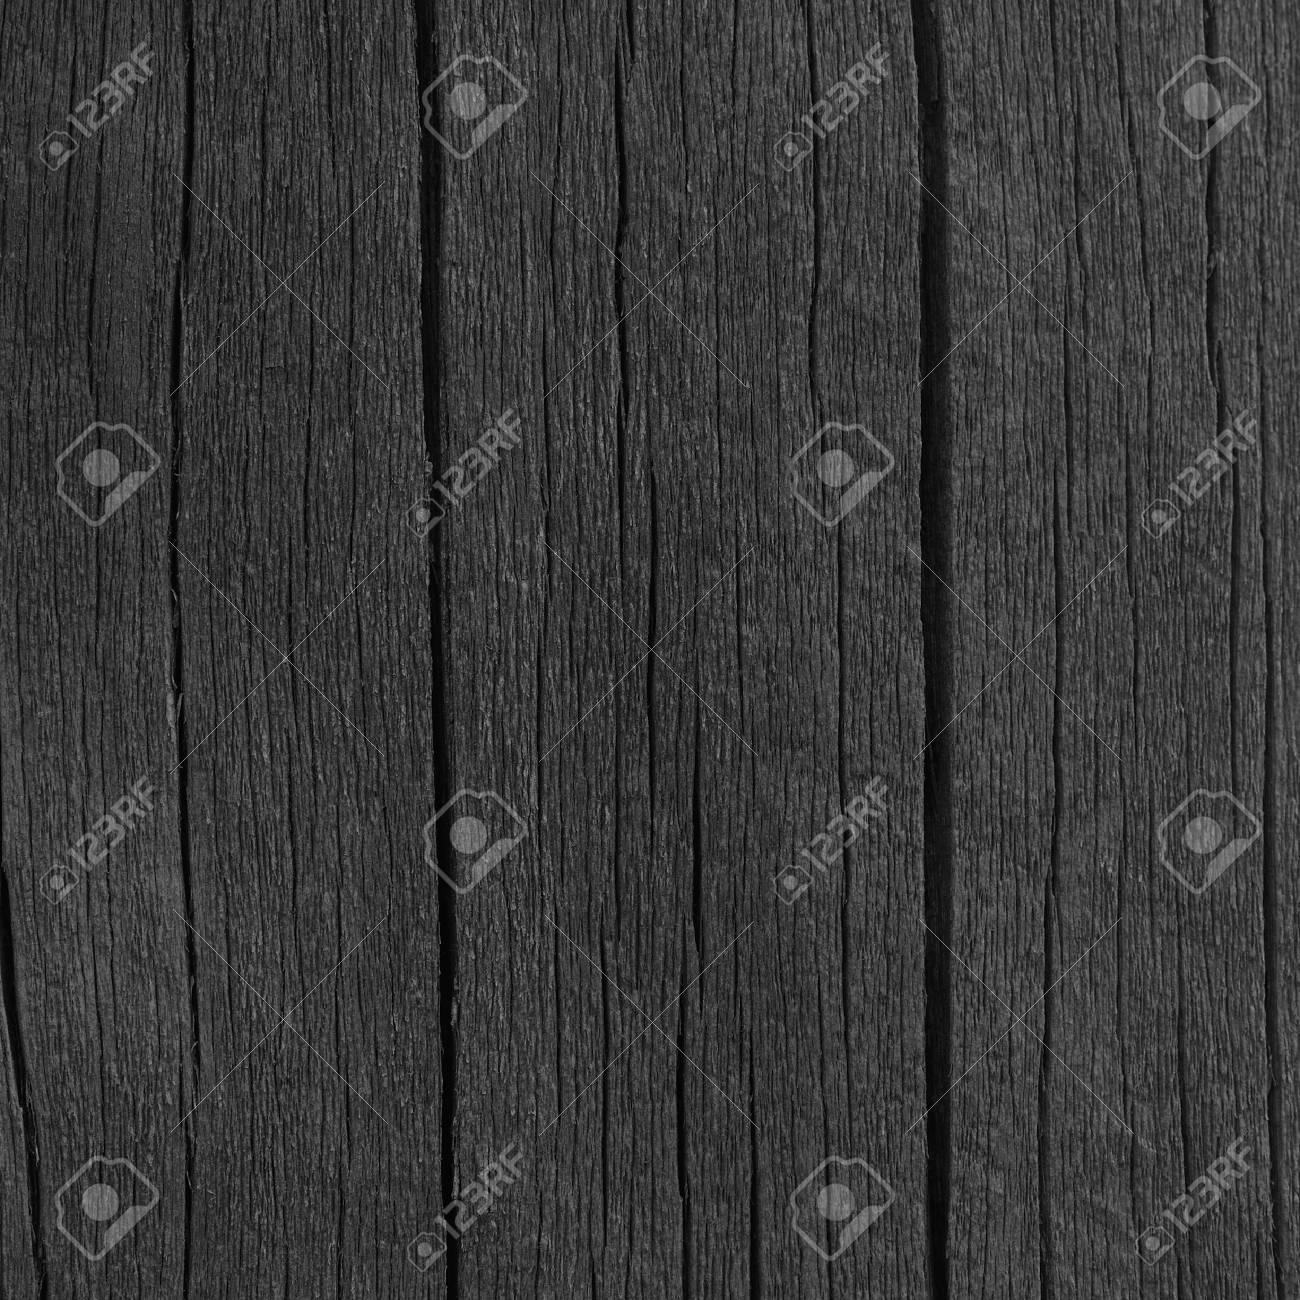 Wooden Plank Board Black Wood Tar Paint Texture Detail Large